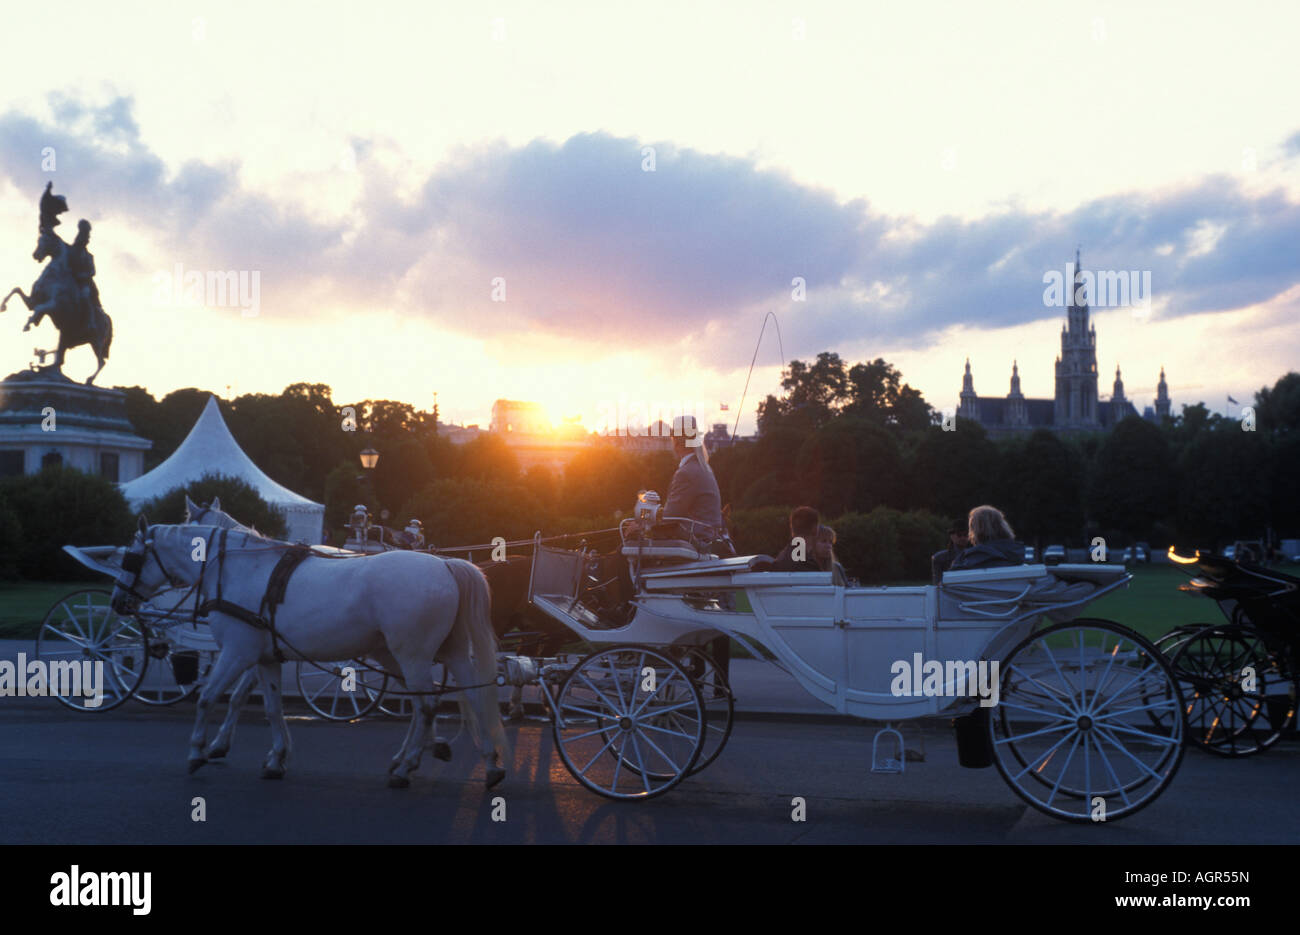 White hackney carriage with white horses at Heldenplatz place in Vienna Austria - Stock Image